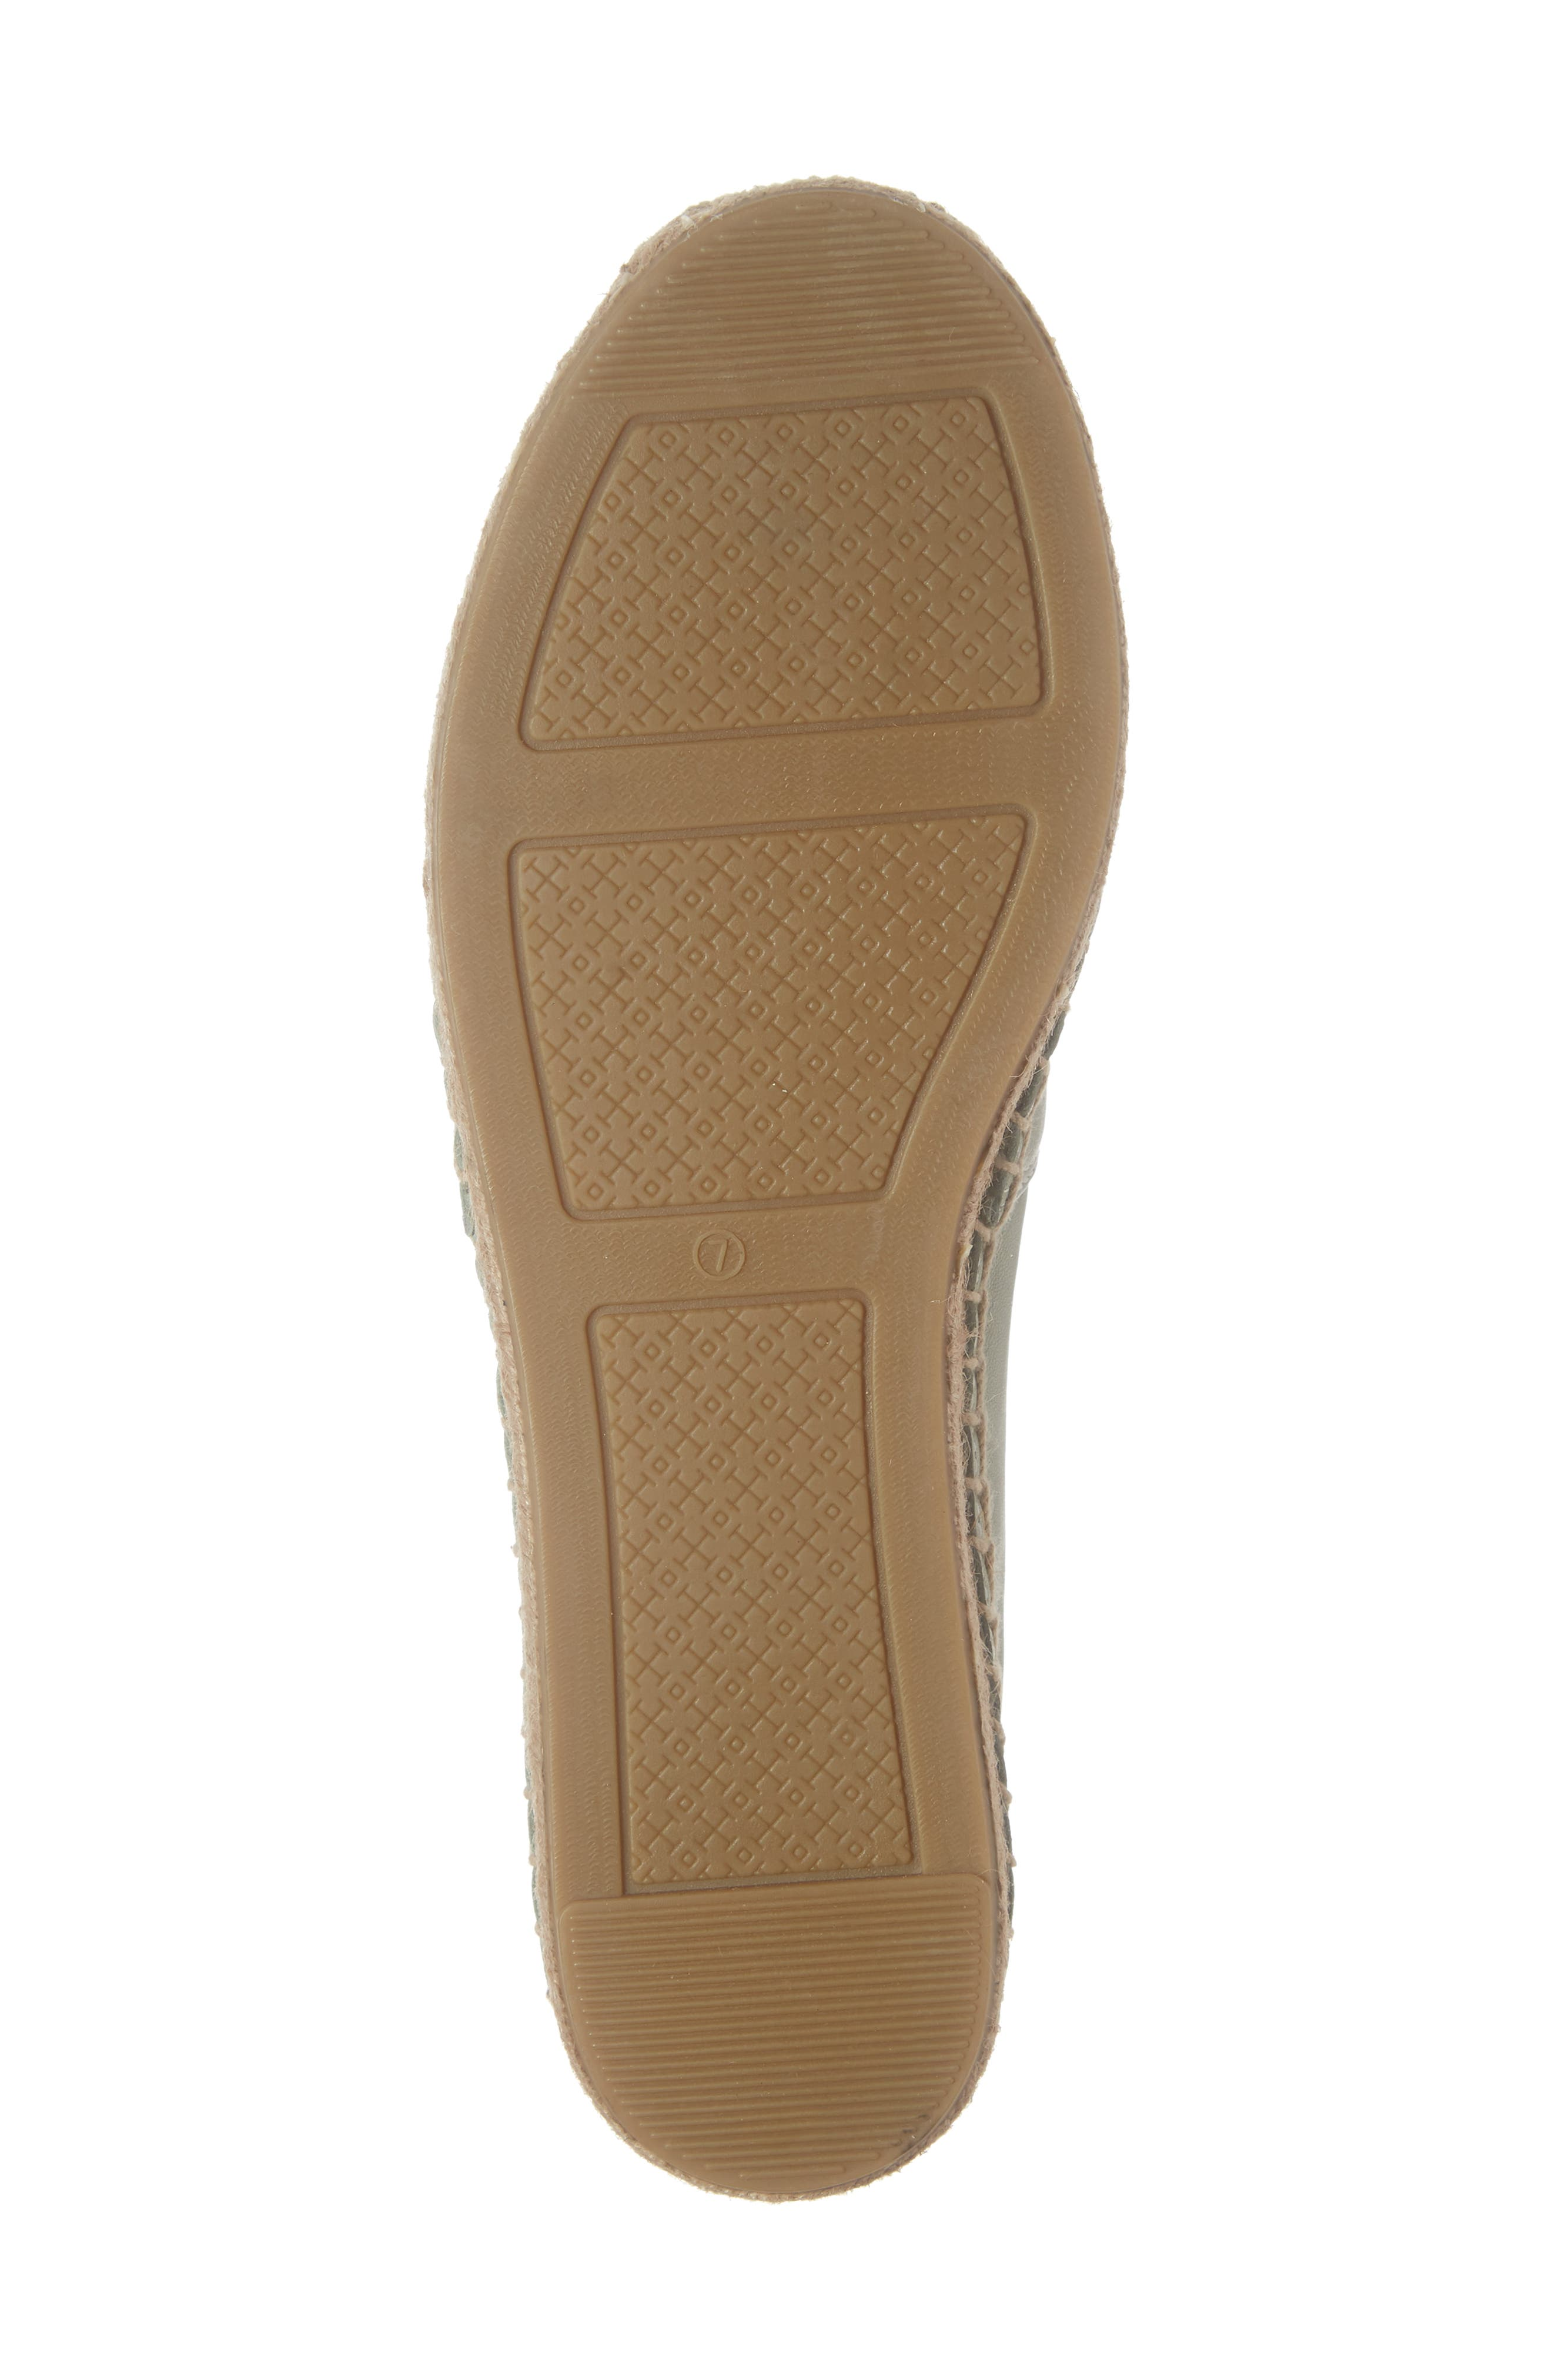 TORY BURCH, Ines Espadrille, Alternate thumbnail 6, color, GARDEN SAGE / SILVER